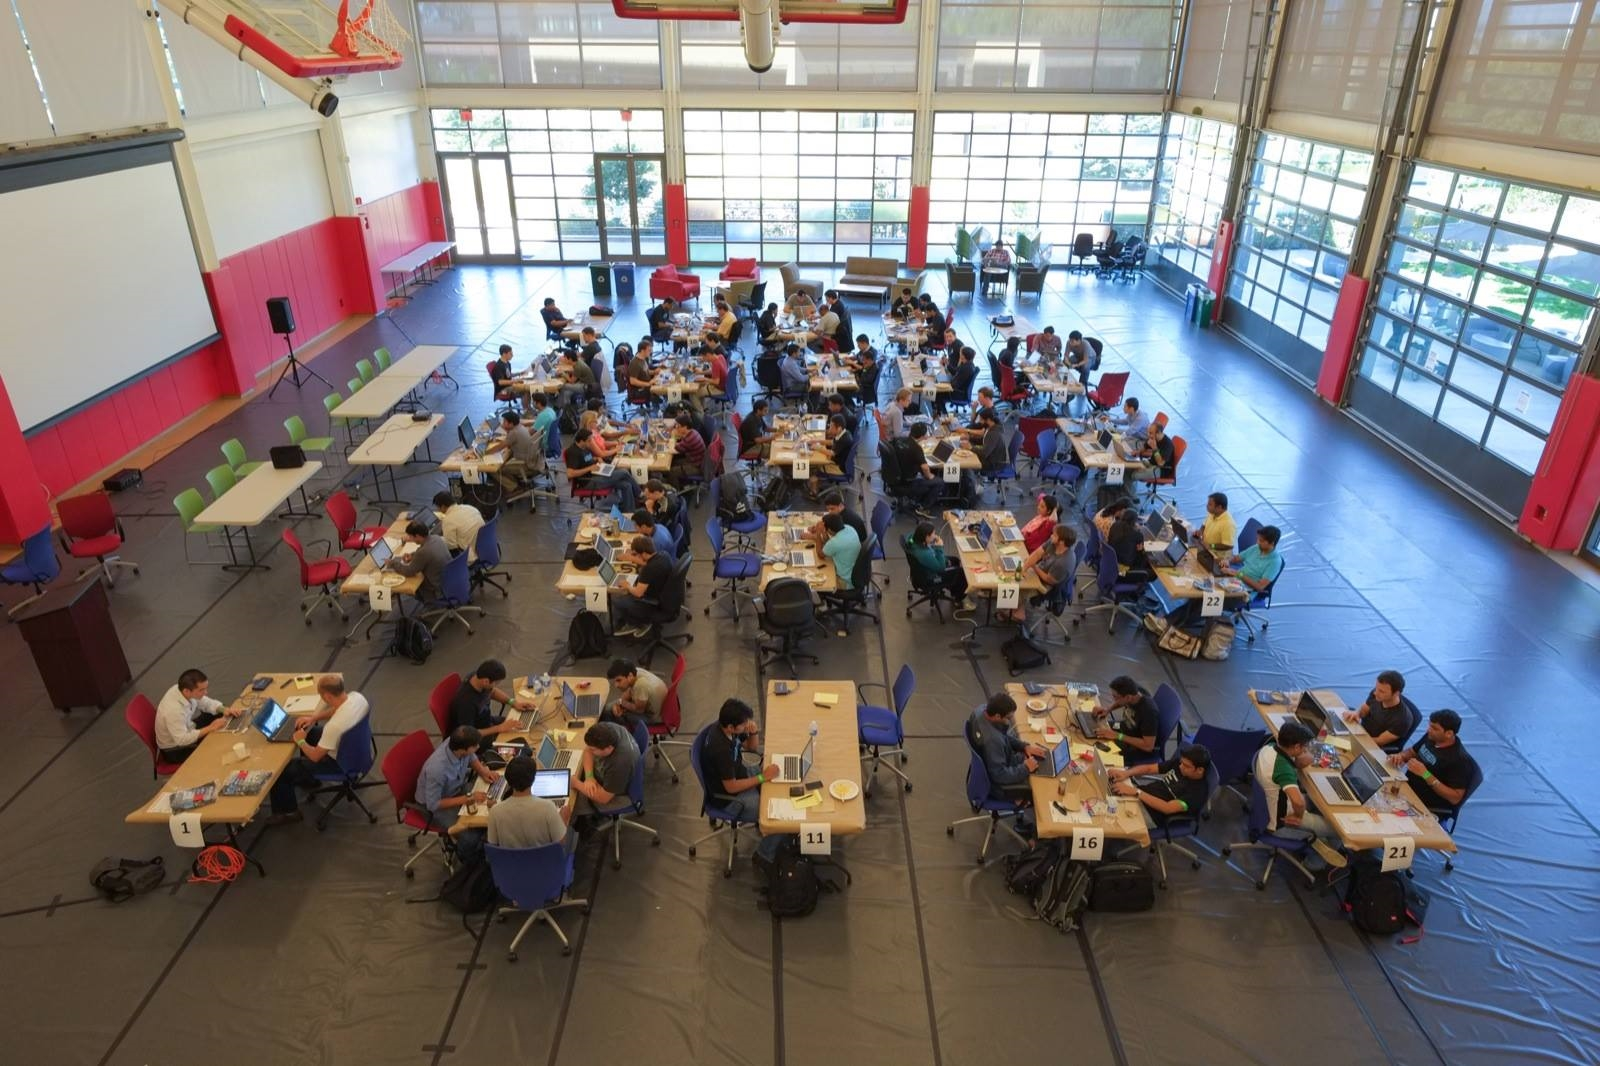 The passion to innovate and challenge the status quo is both a shared value at VMware and what fuels Borathon, our own hackathon that challenges employees to innovate and solve tough problems.